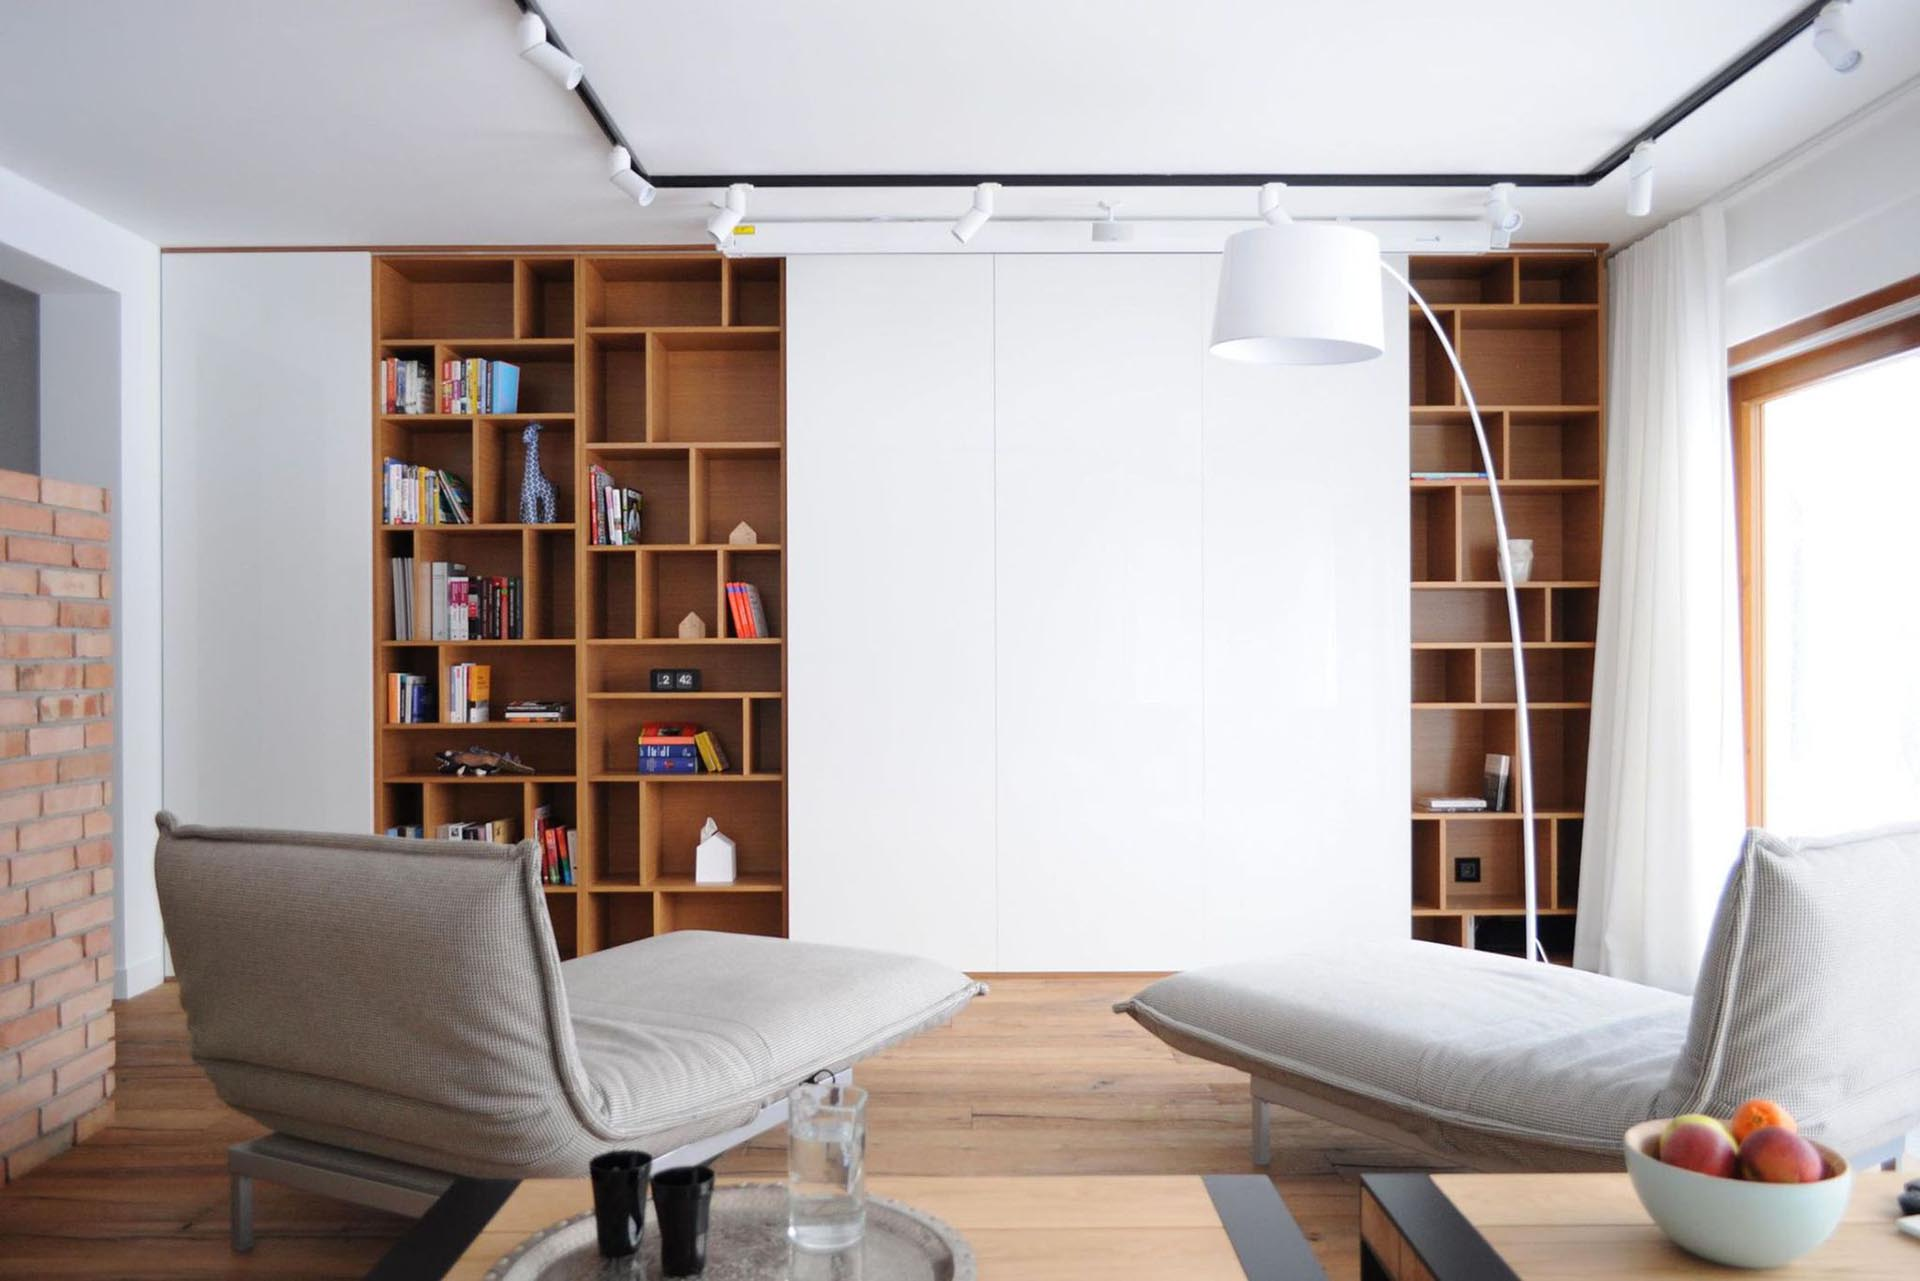 A living room with wood bookshelves has white wall panels that hide a TV.